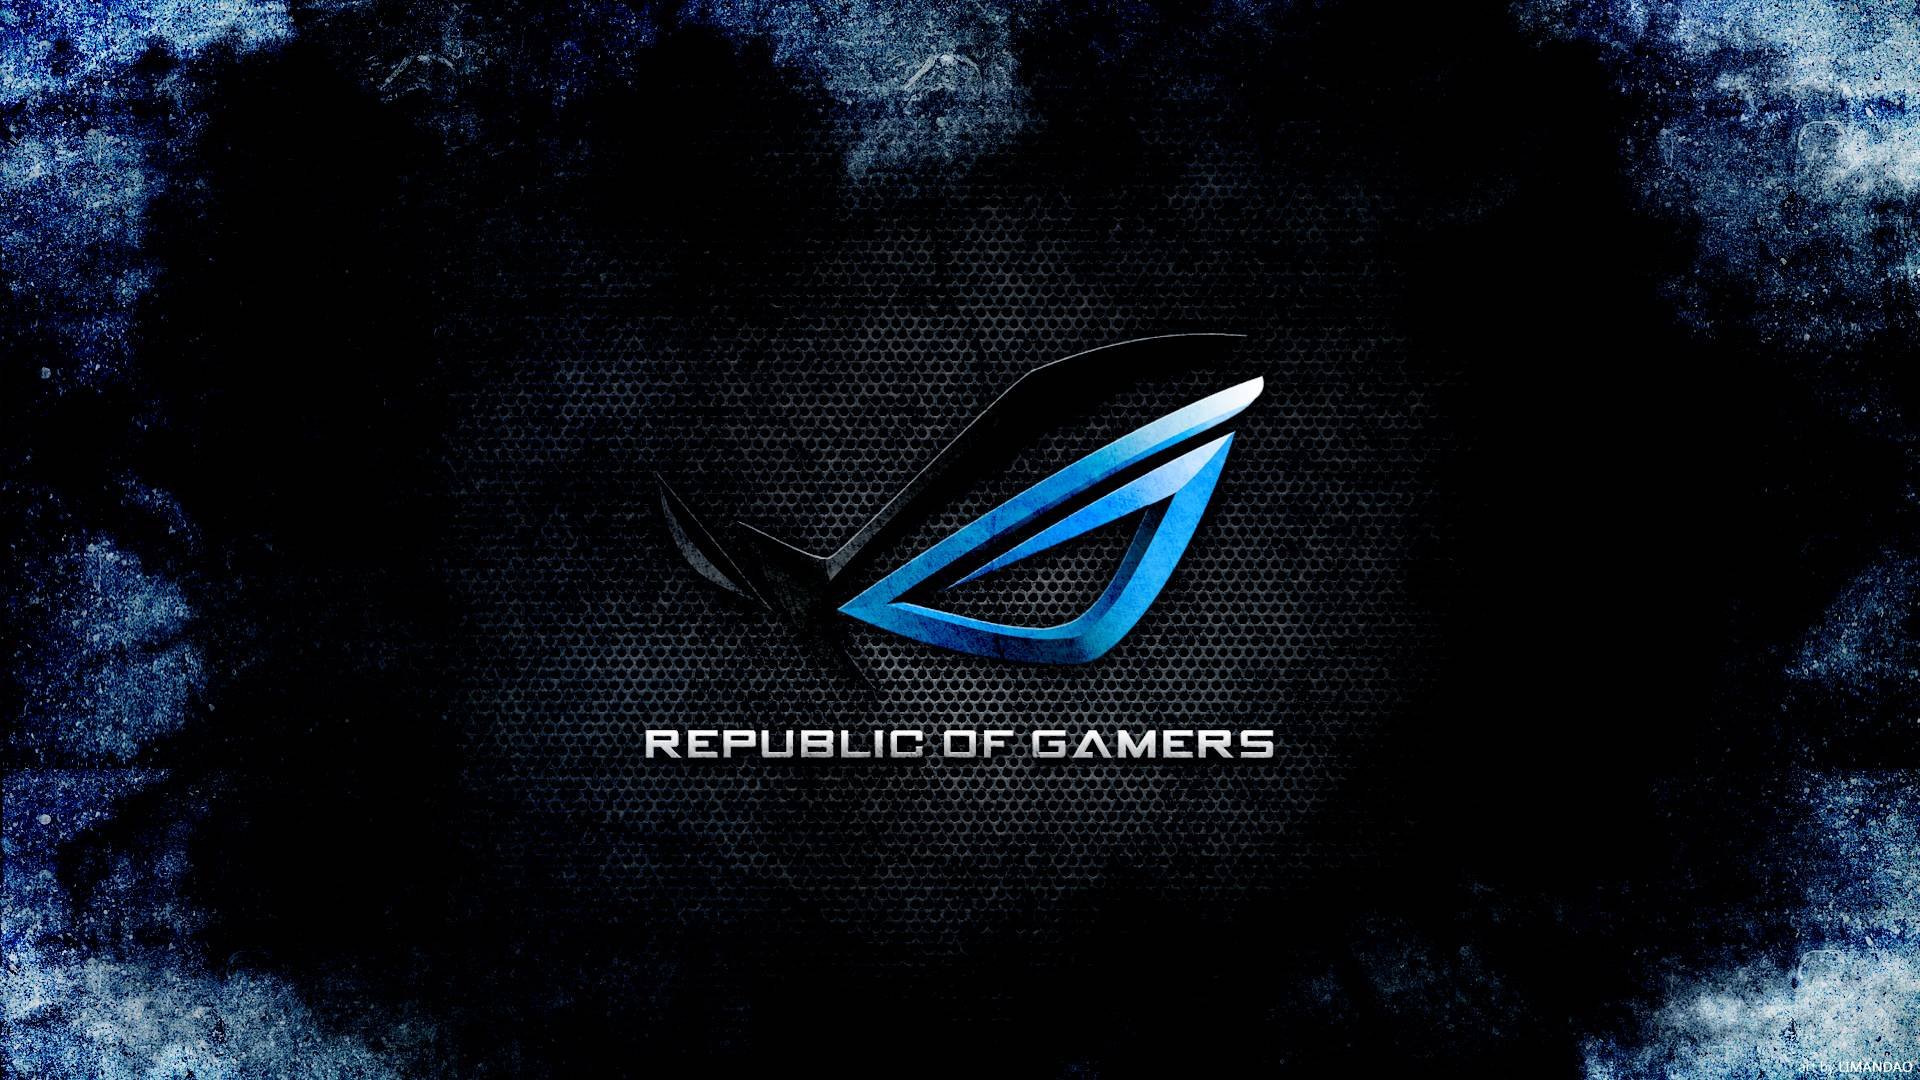 Republic of gamers wallpapers wallpaper cave - Asus x series wallpaper hd ...